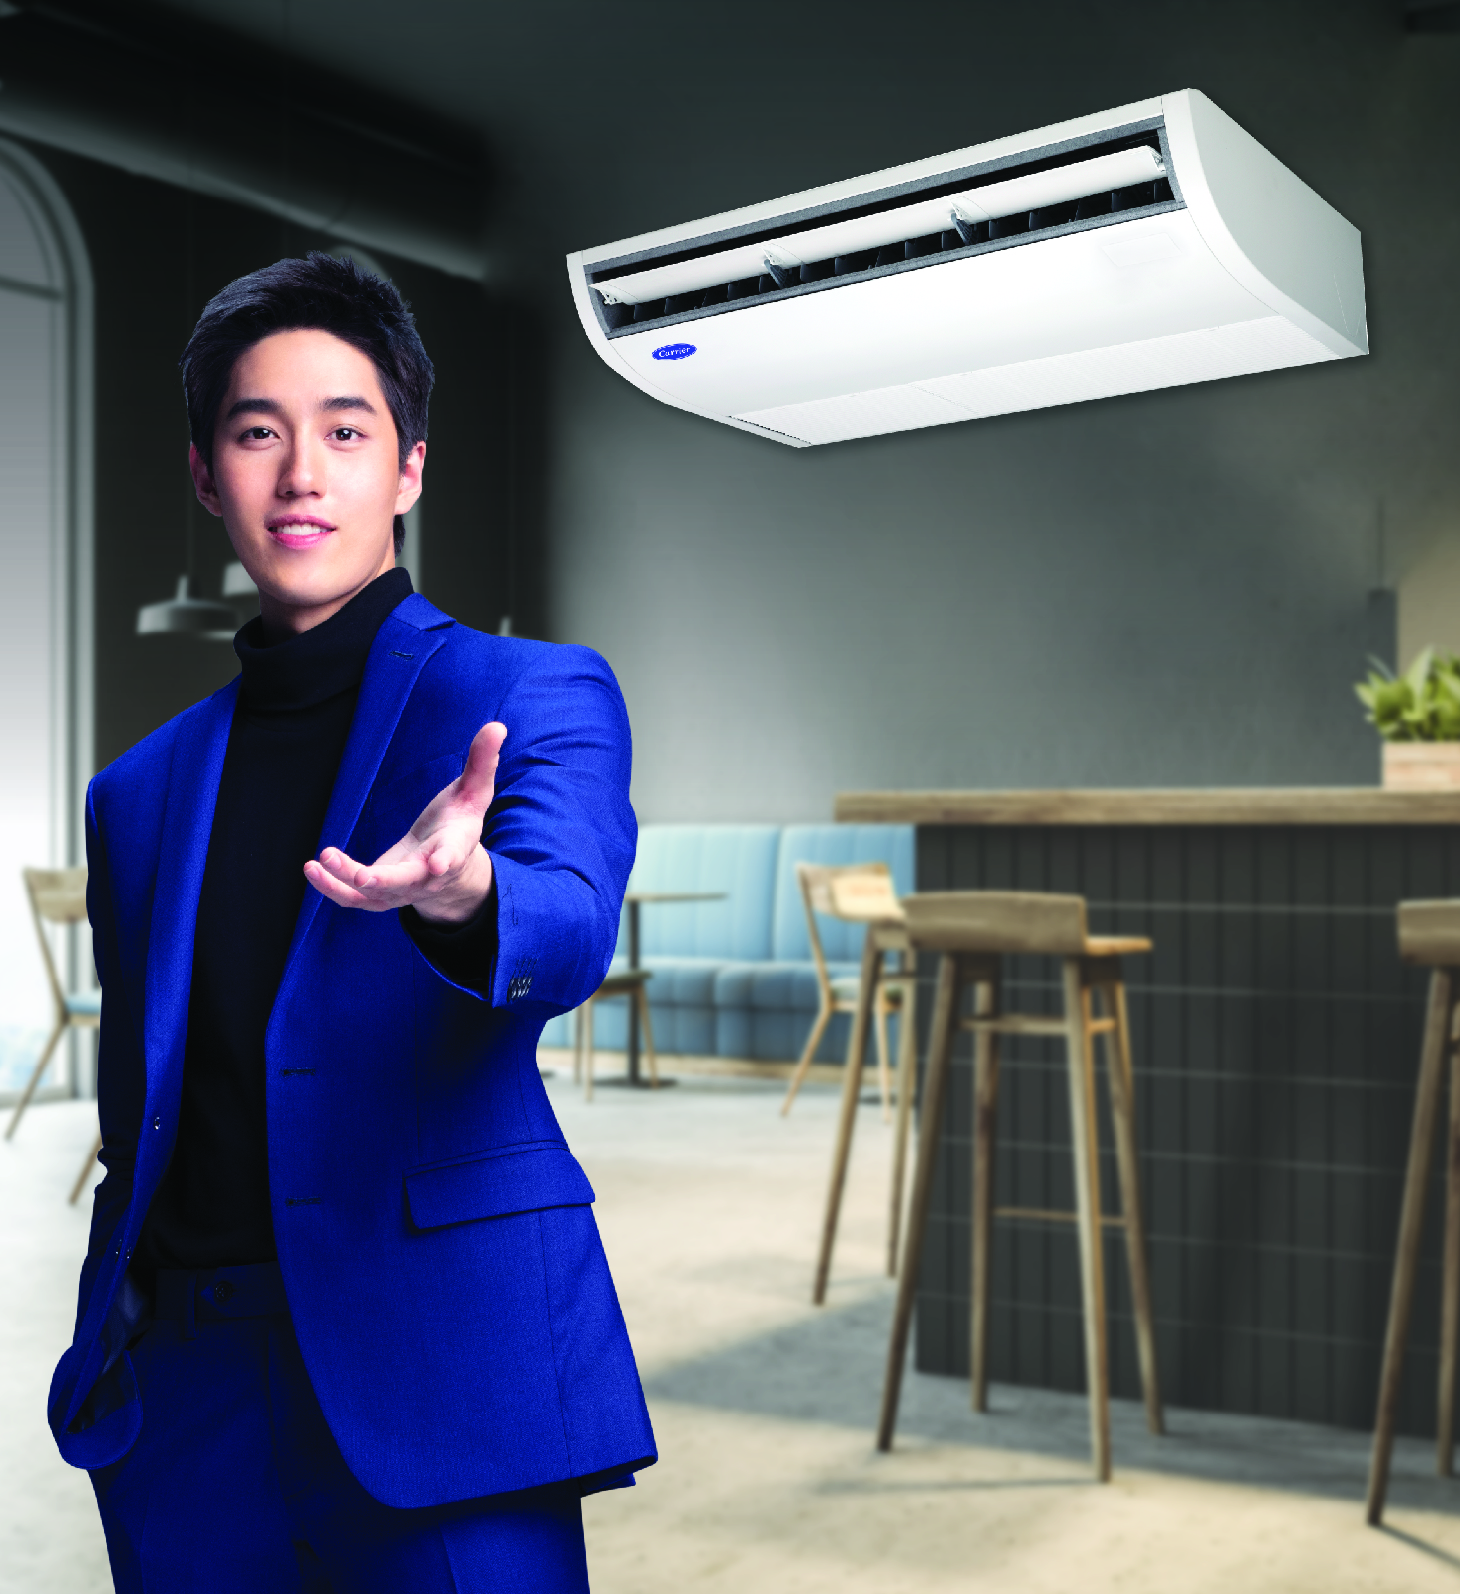 carrierthailand x power ceiling mobile hero